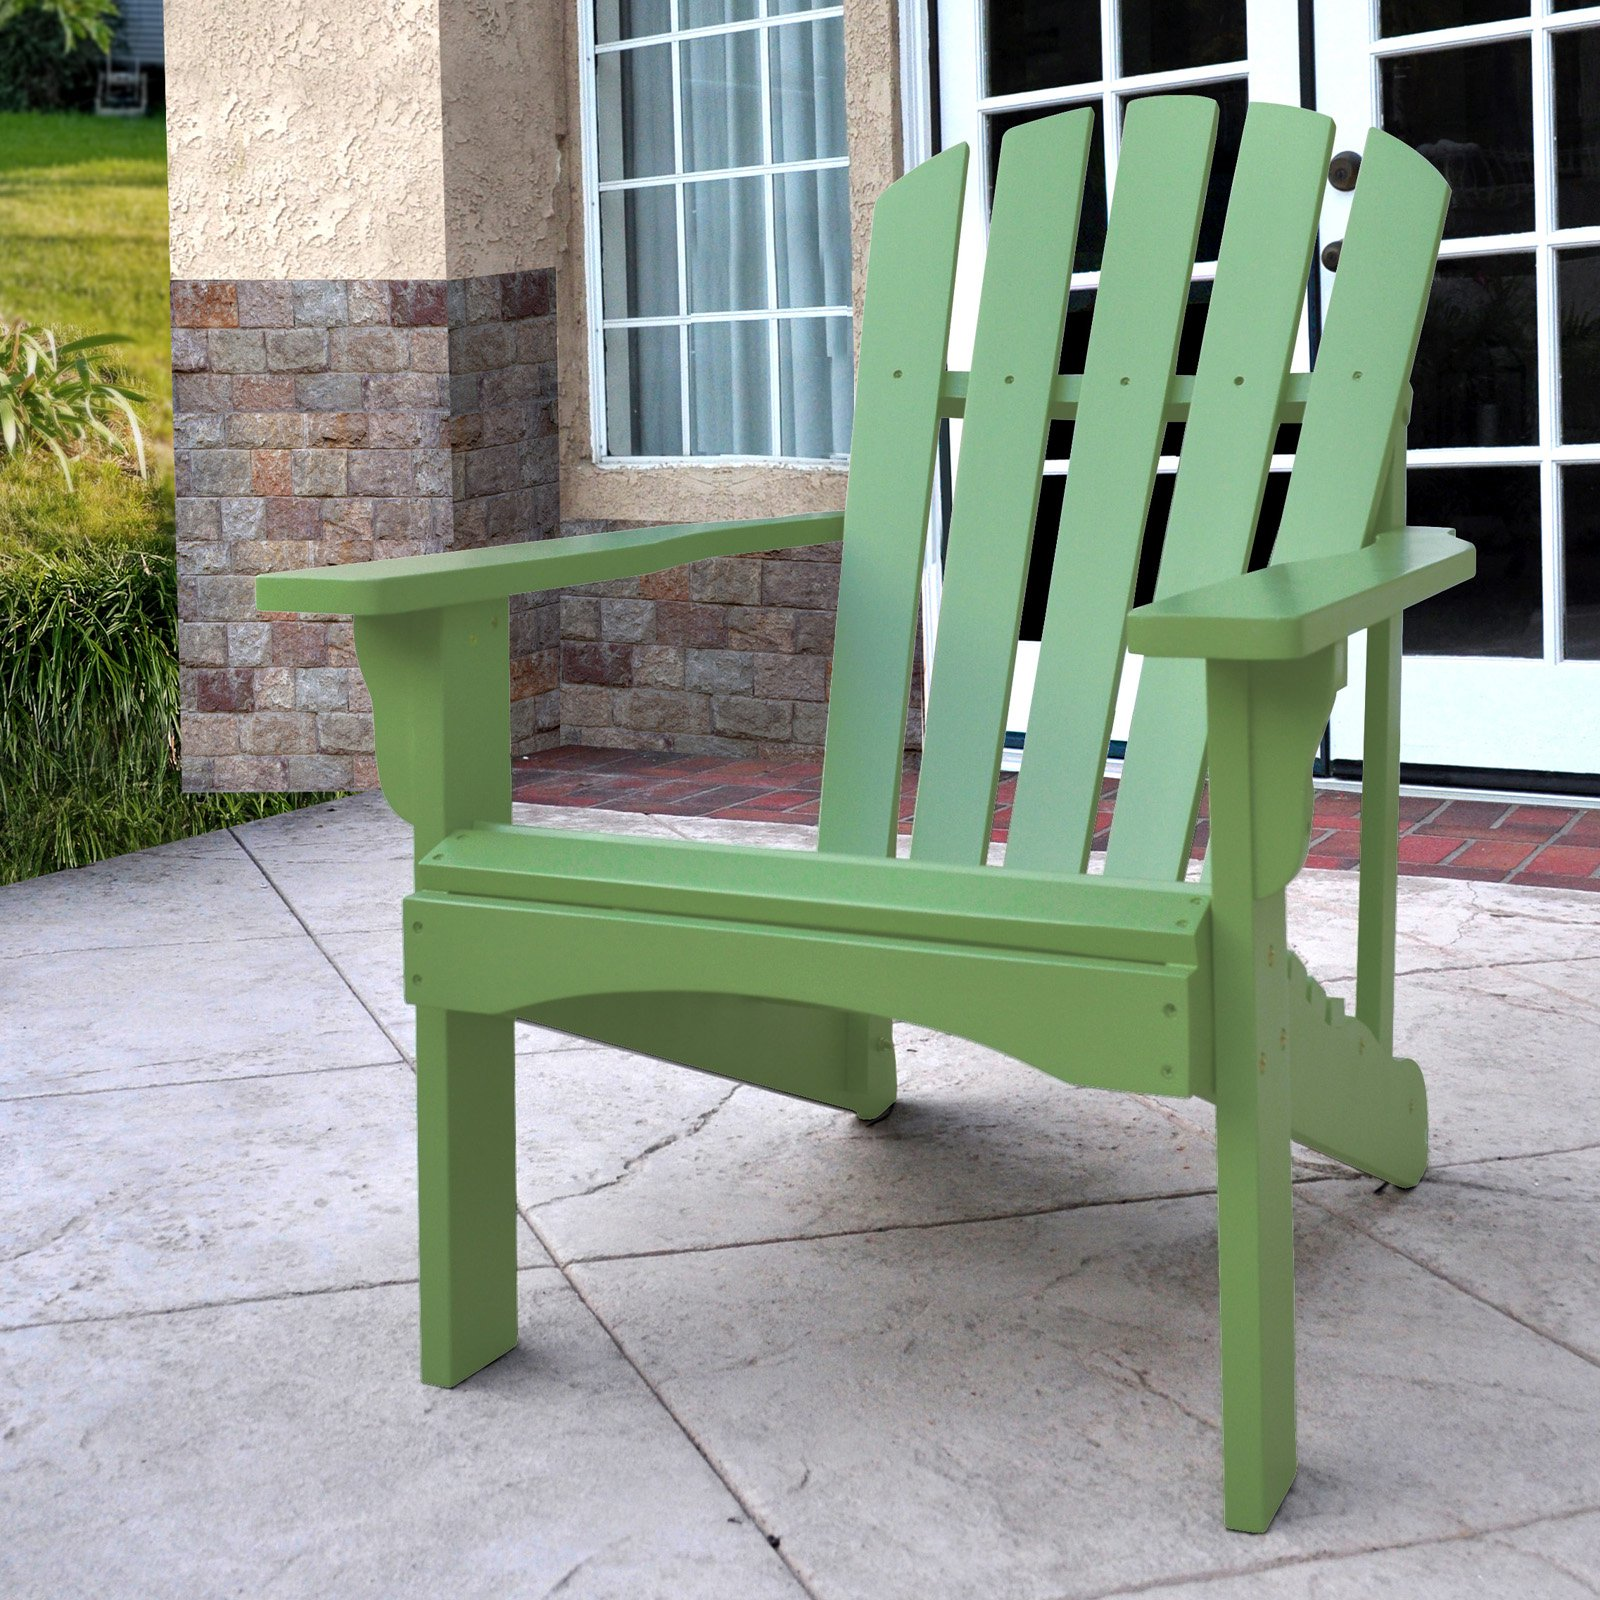 Shine pany Rockport Adirondack Chair Walmart